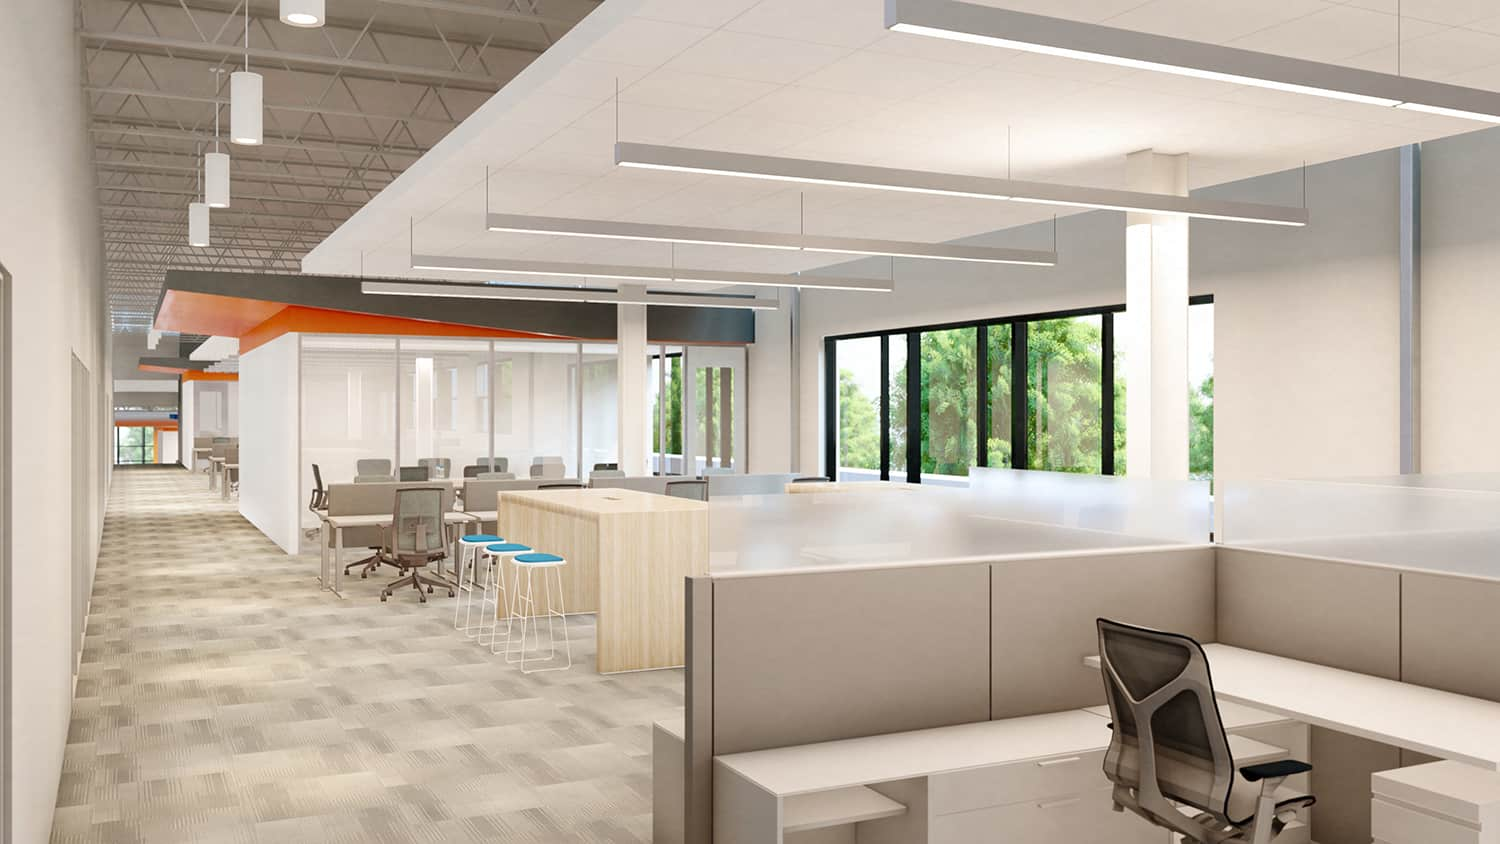 An open workstation neighborhood with drop-in collaboration bars and transparent conference rooms.